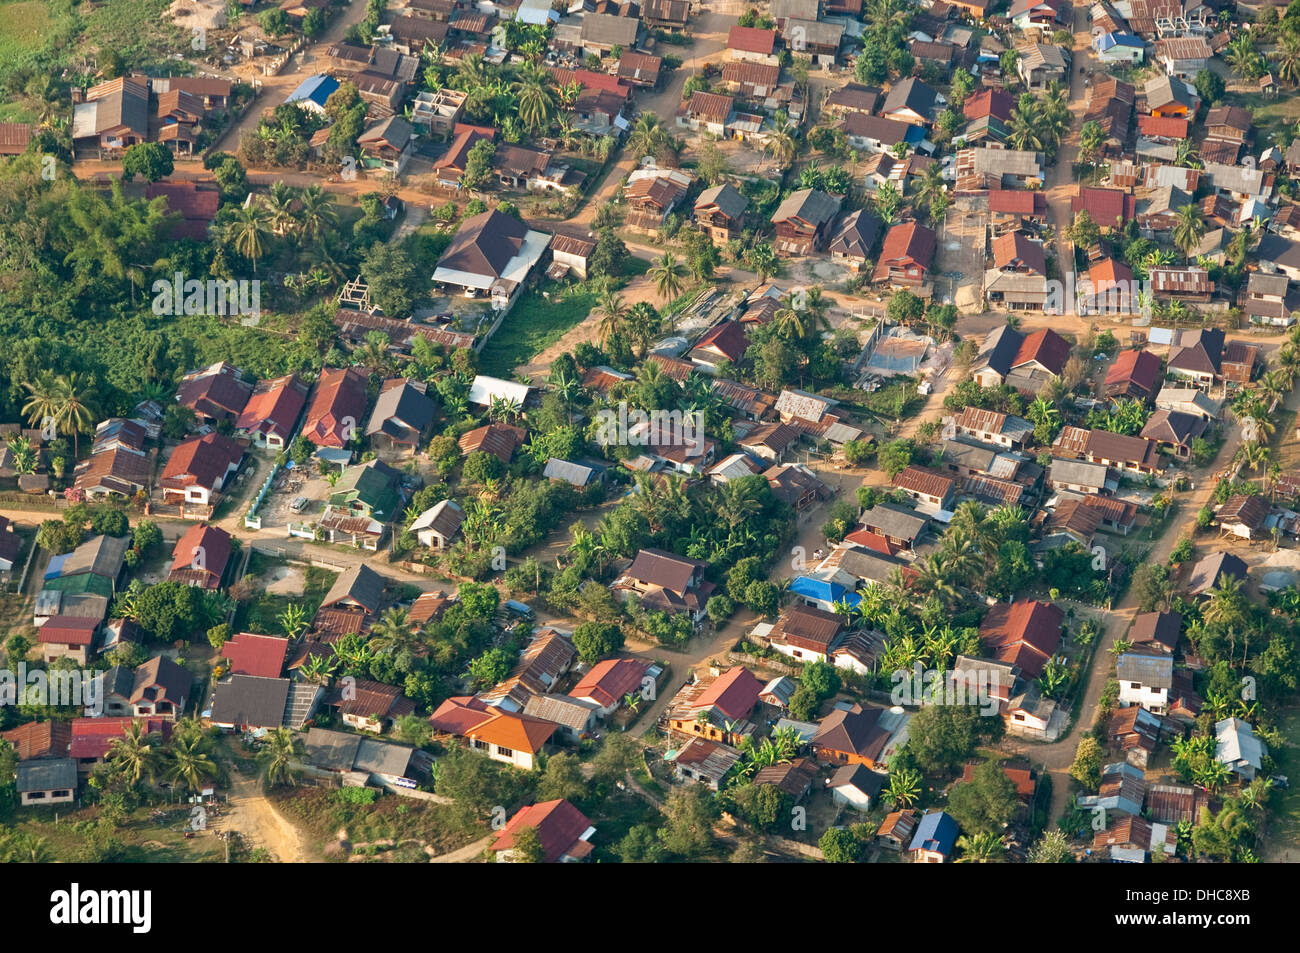 Horizontal Aerial View Of Homes And Houses In Vang Vieng